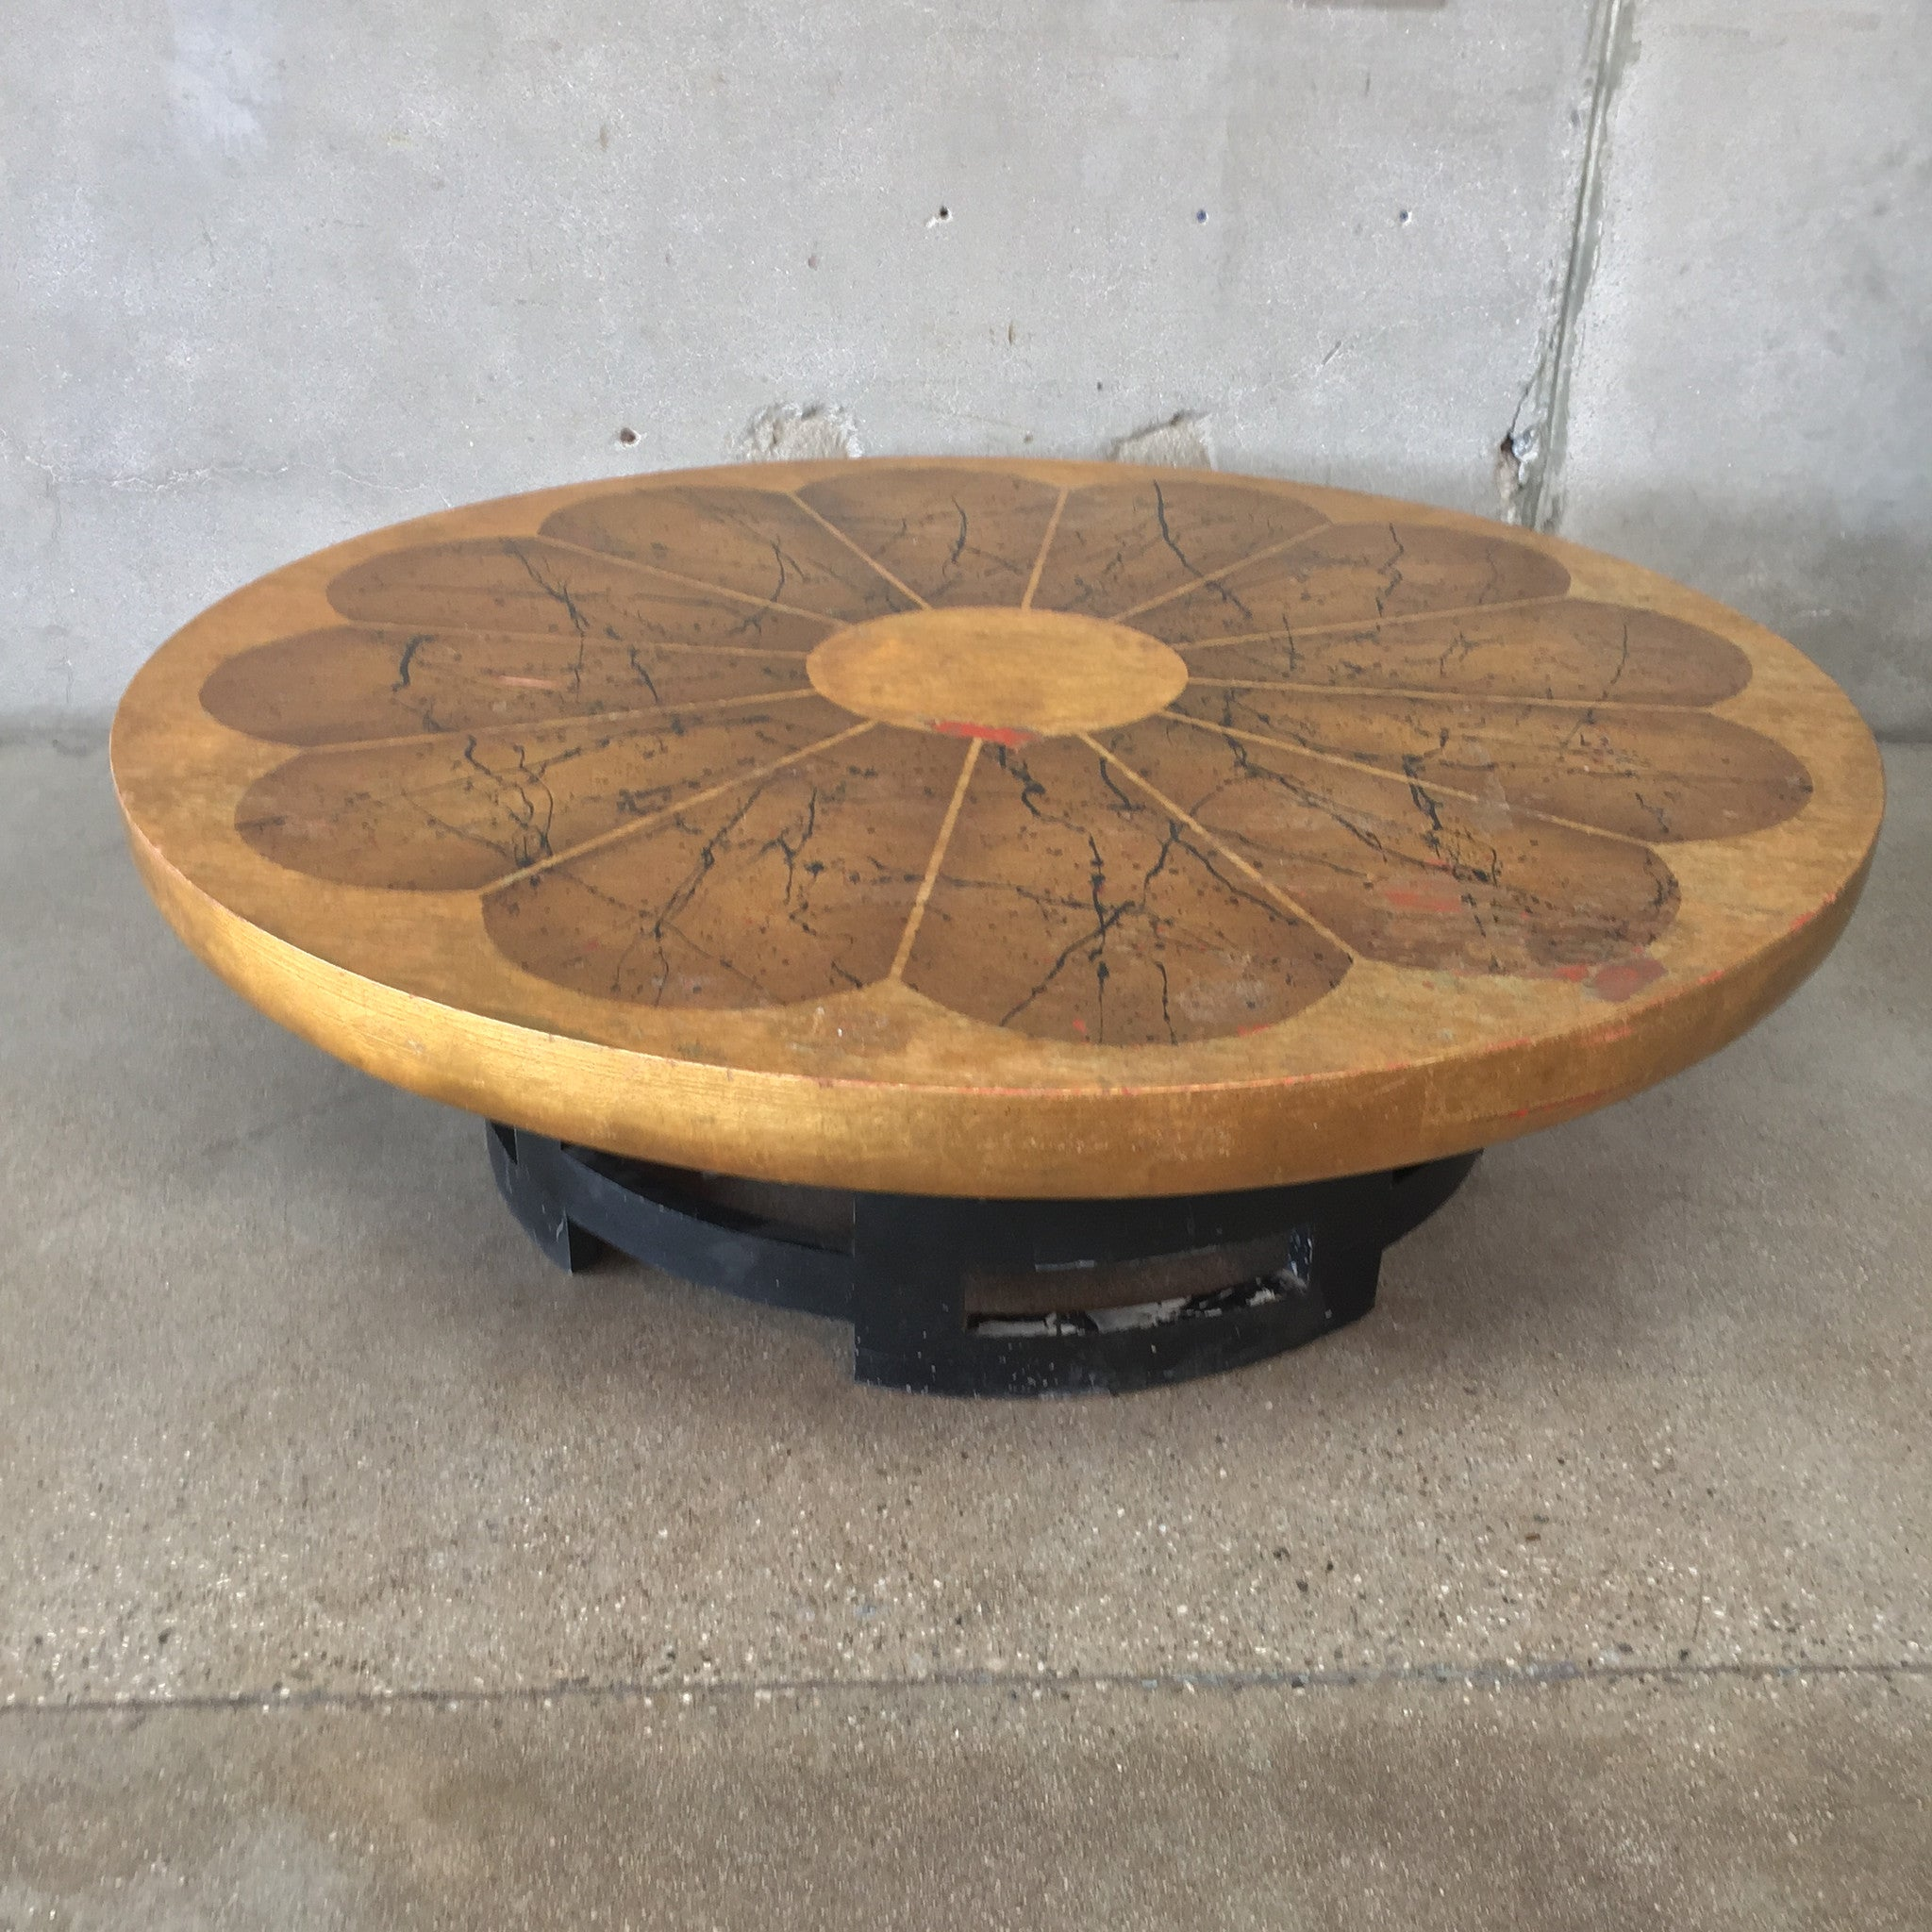 Kittinger Lotus Coffee Table – UrbanAmericana